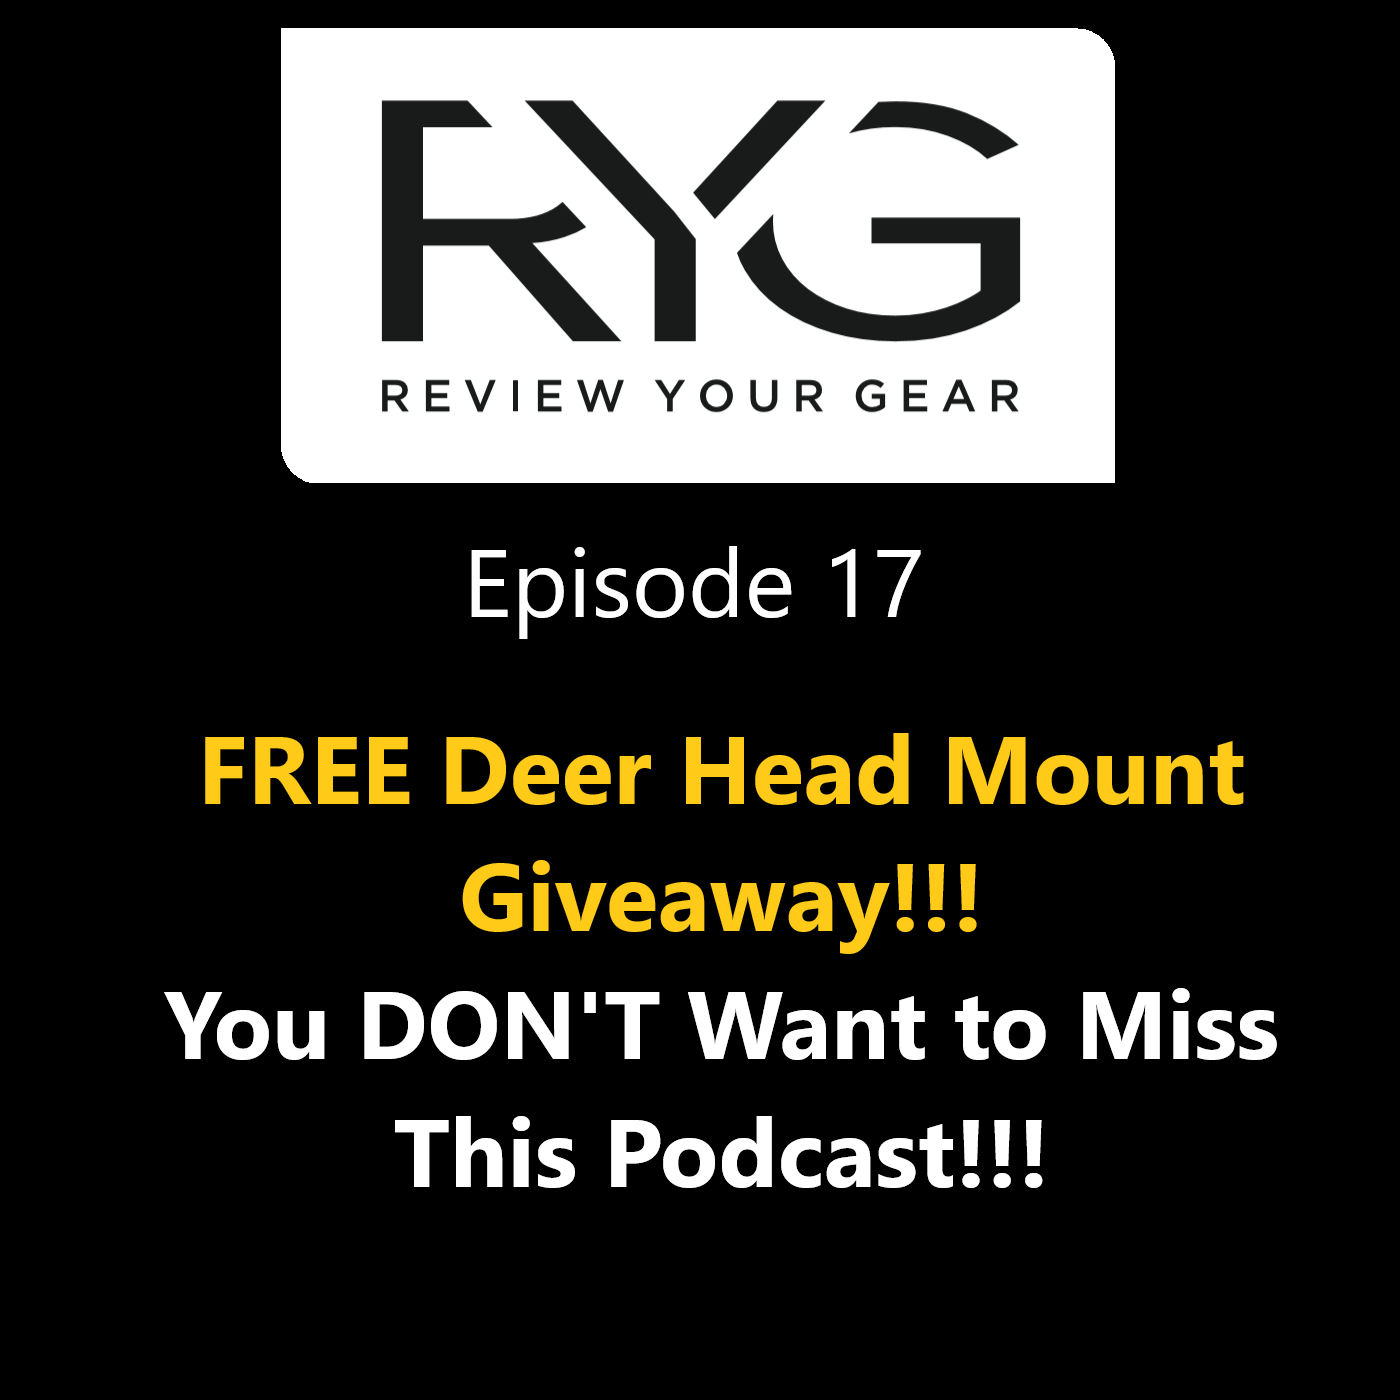 Episode 17 - FREE DEER MOUNT GIVEAWAY, NWT, Goose Decoys, Archery Season, Upland Hunting, Reviews and More! show art